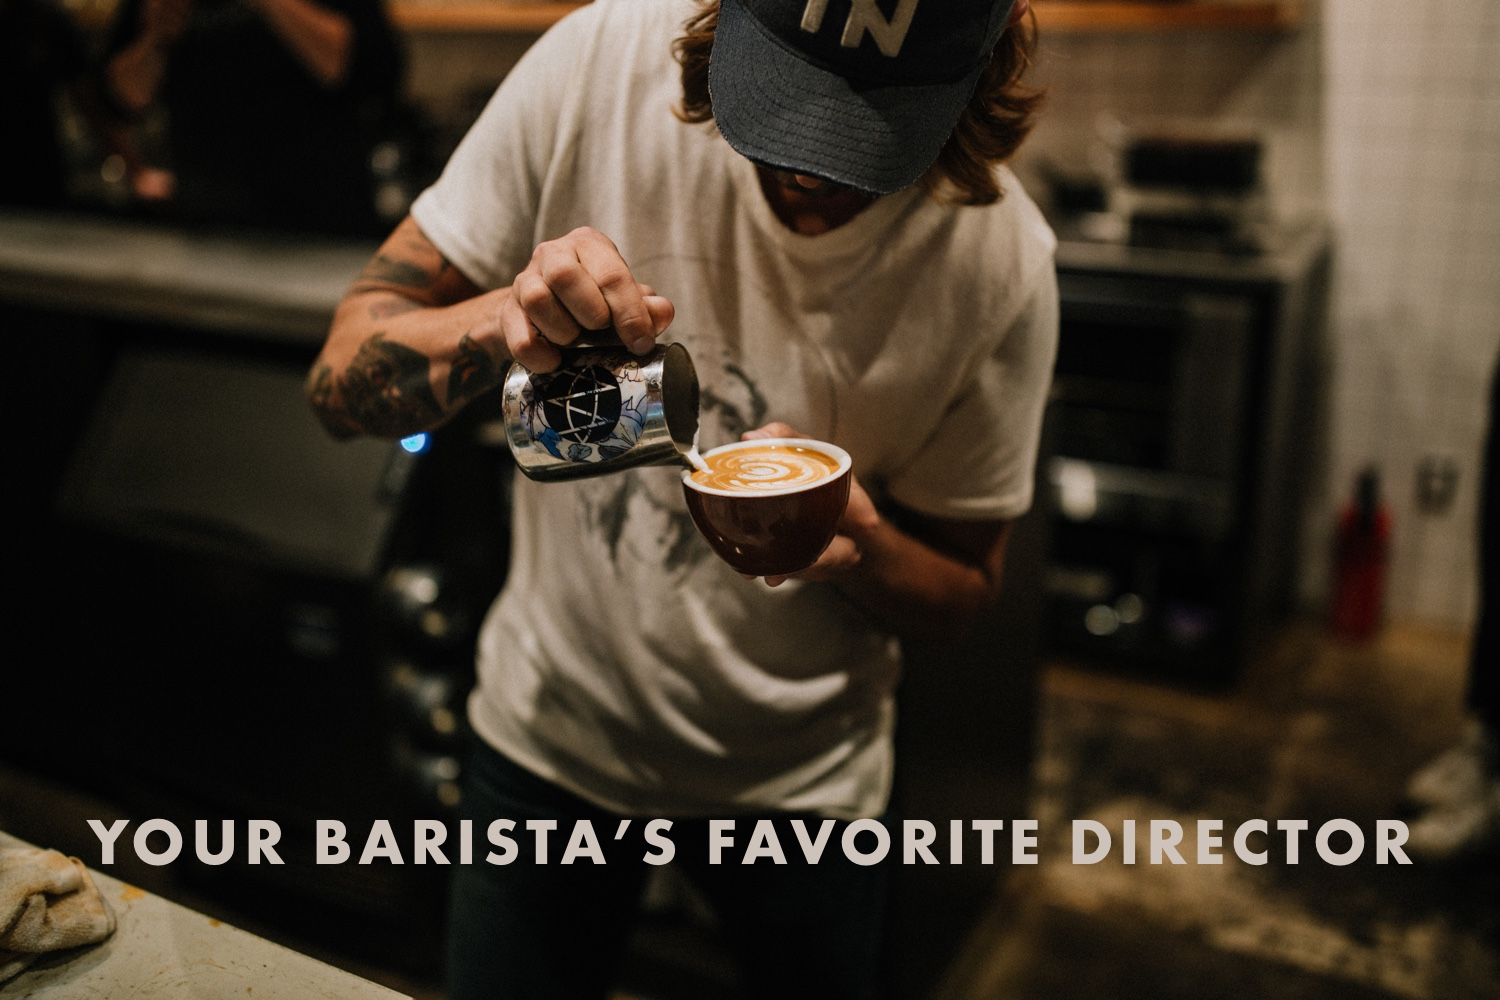 Eigene Illustration: Barista bereitet Kaffee zu. Photo by Benjaminrobyn Jespersen on Unsplash